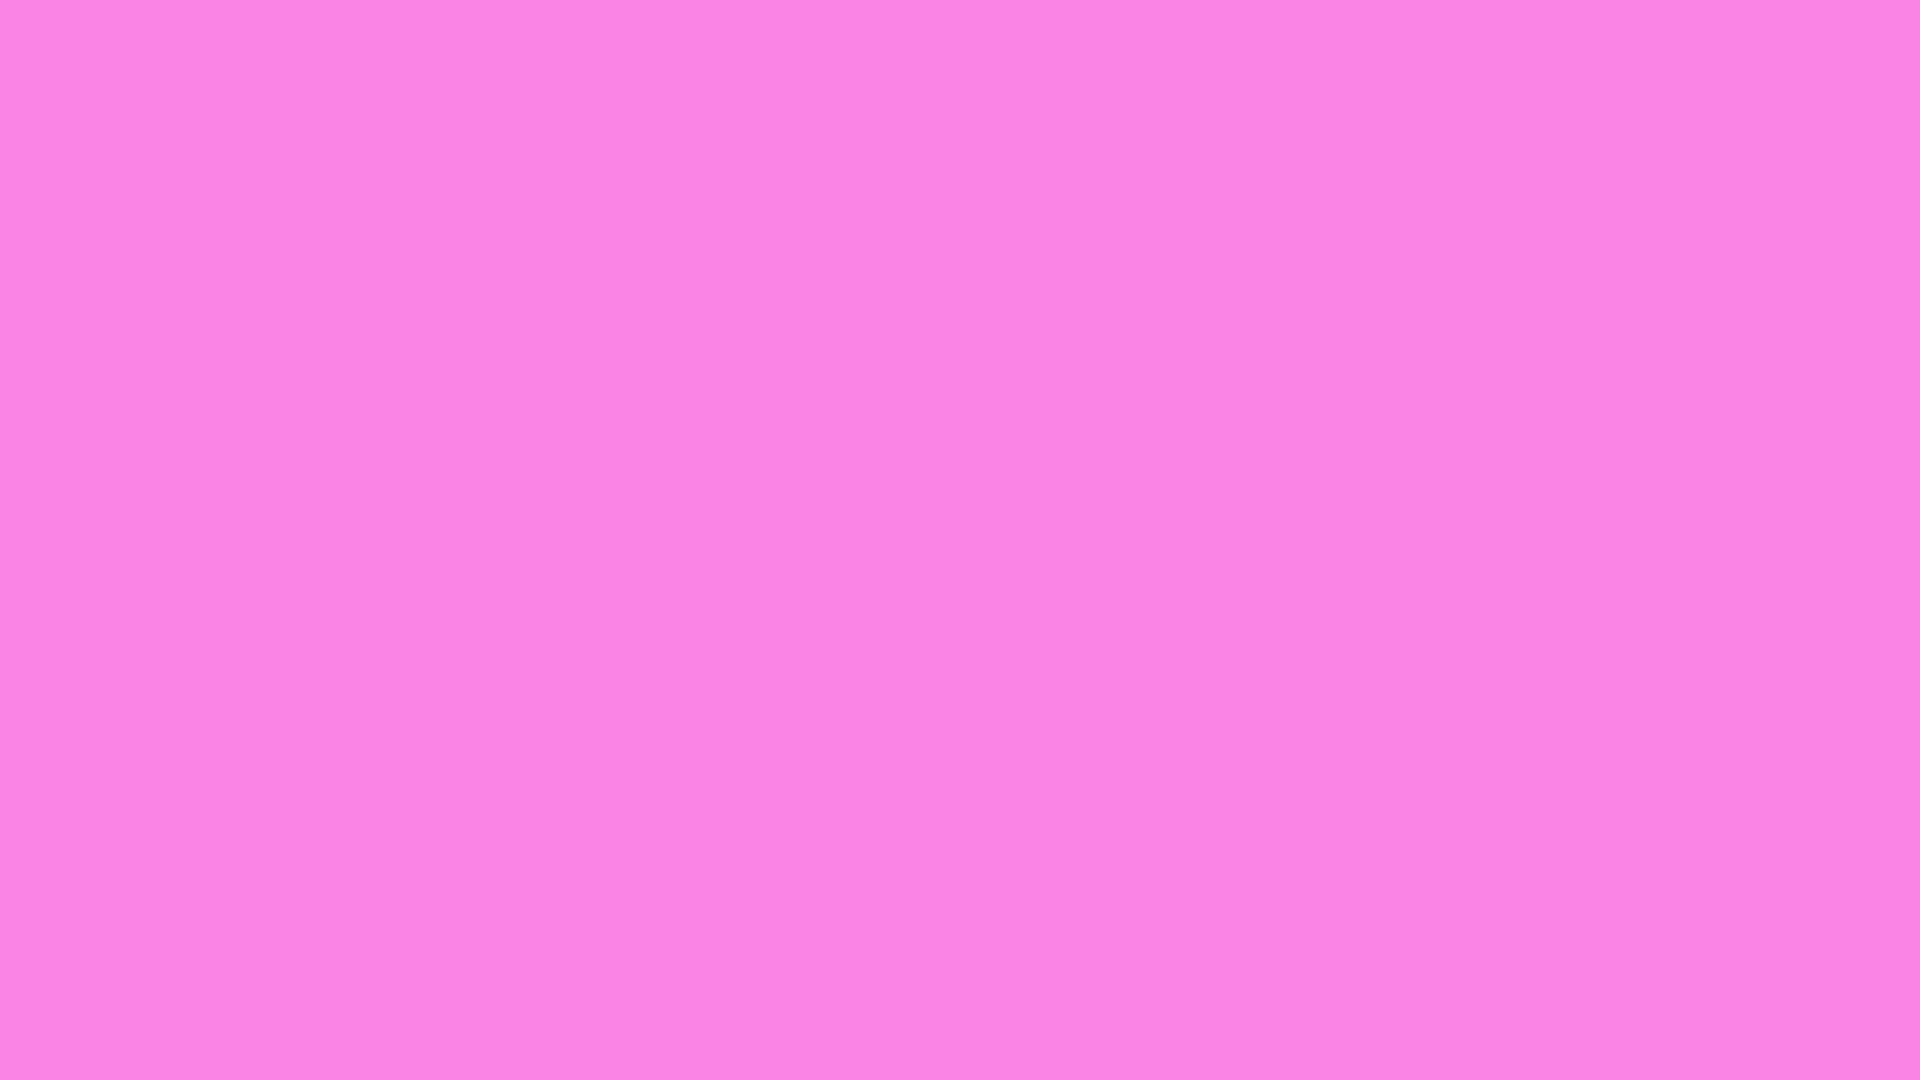 1920x1080 Pale Magenta Solid Color Background